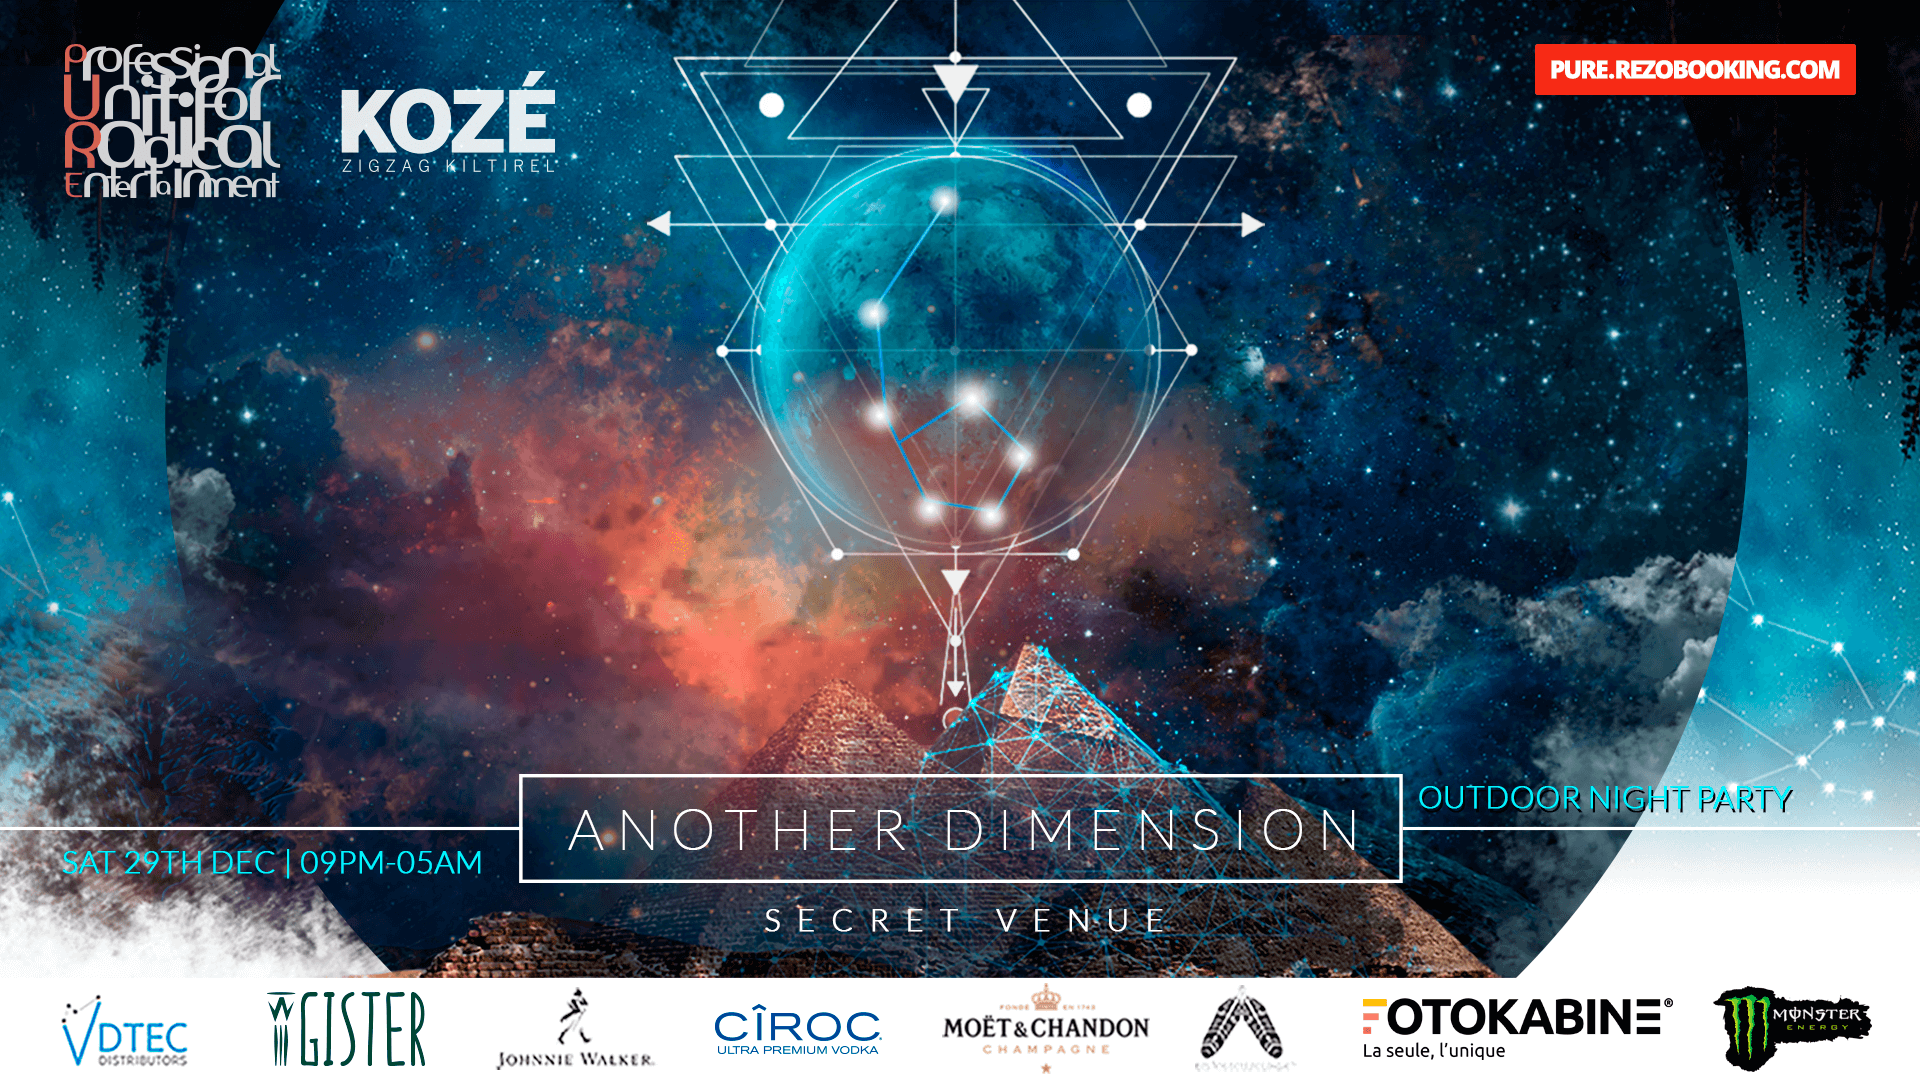 Pure-another-dimension-rezobooking_V2